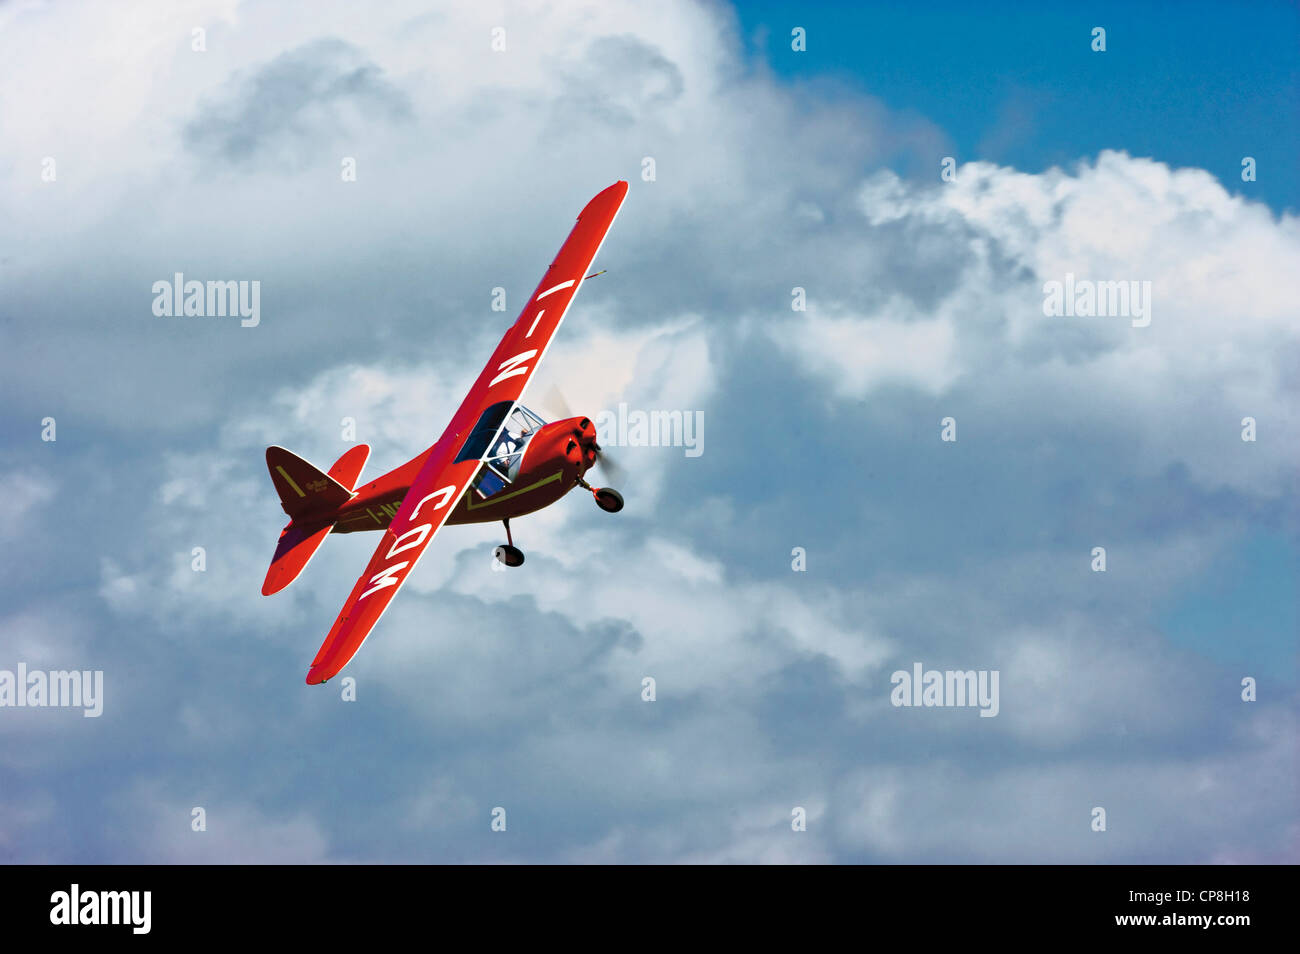 Europe Italy Piedmont Turin  Word Air Games 2009 Planes in flight - Stock Image